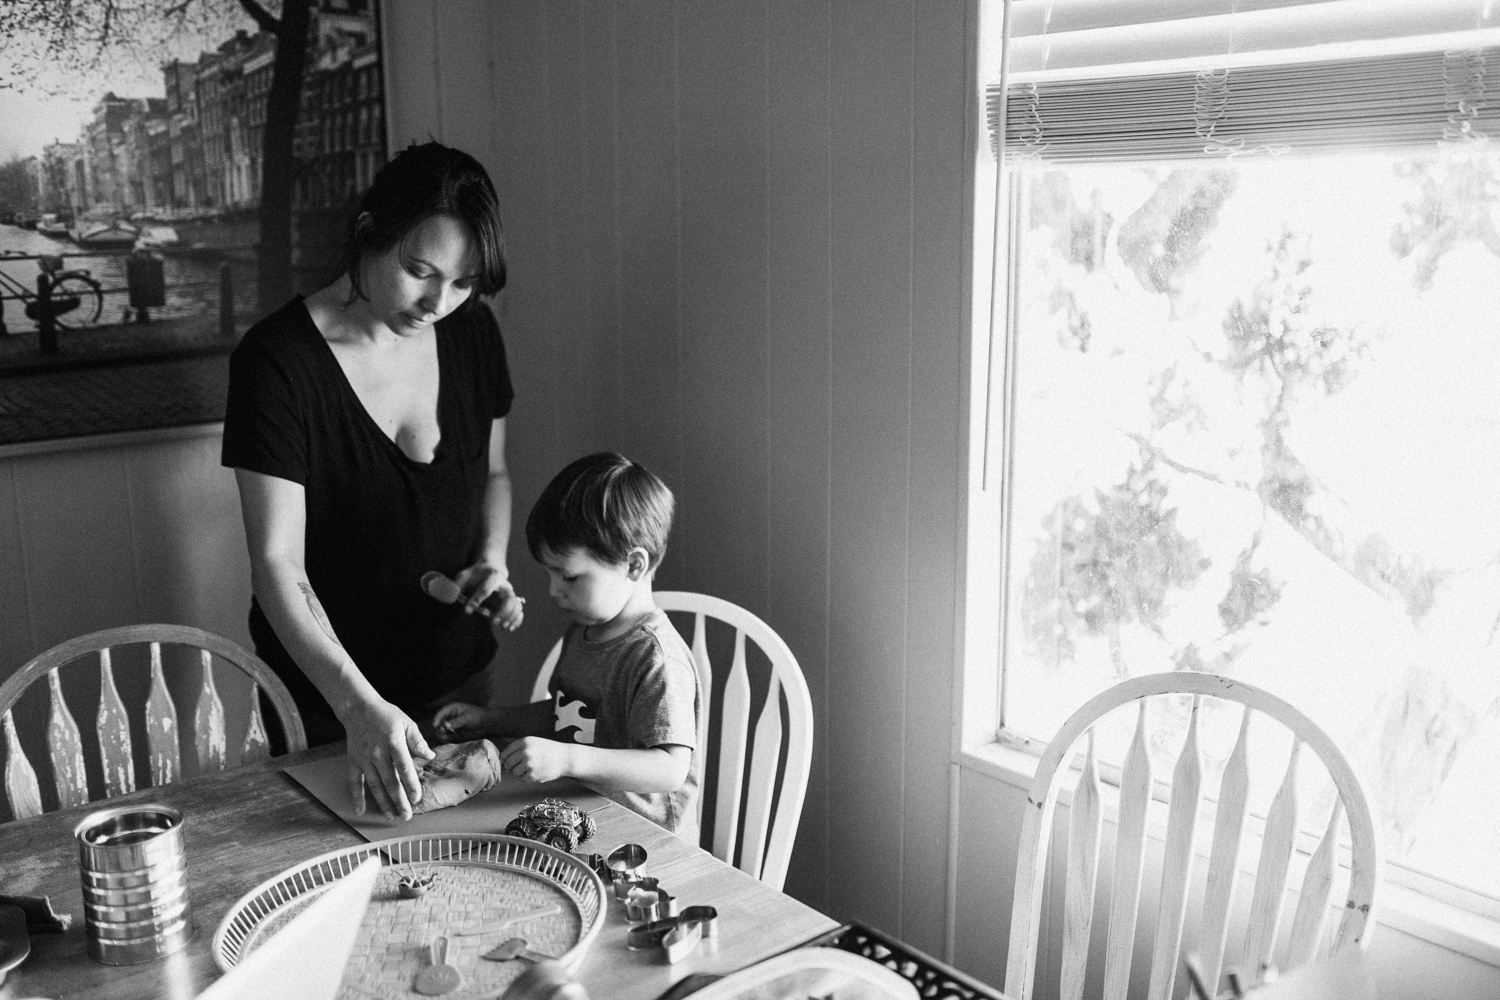 mother-and-son-playing-with-playdough-day-in-the-life-photo-session-san-diego-california